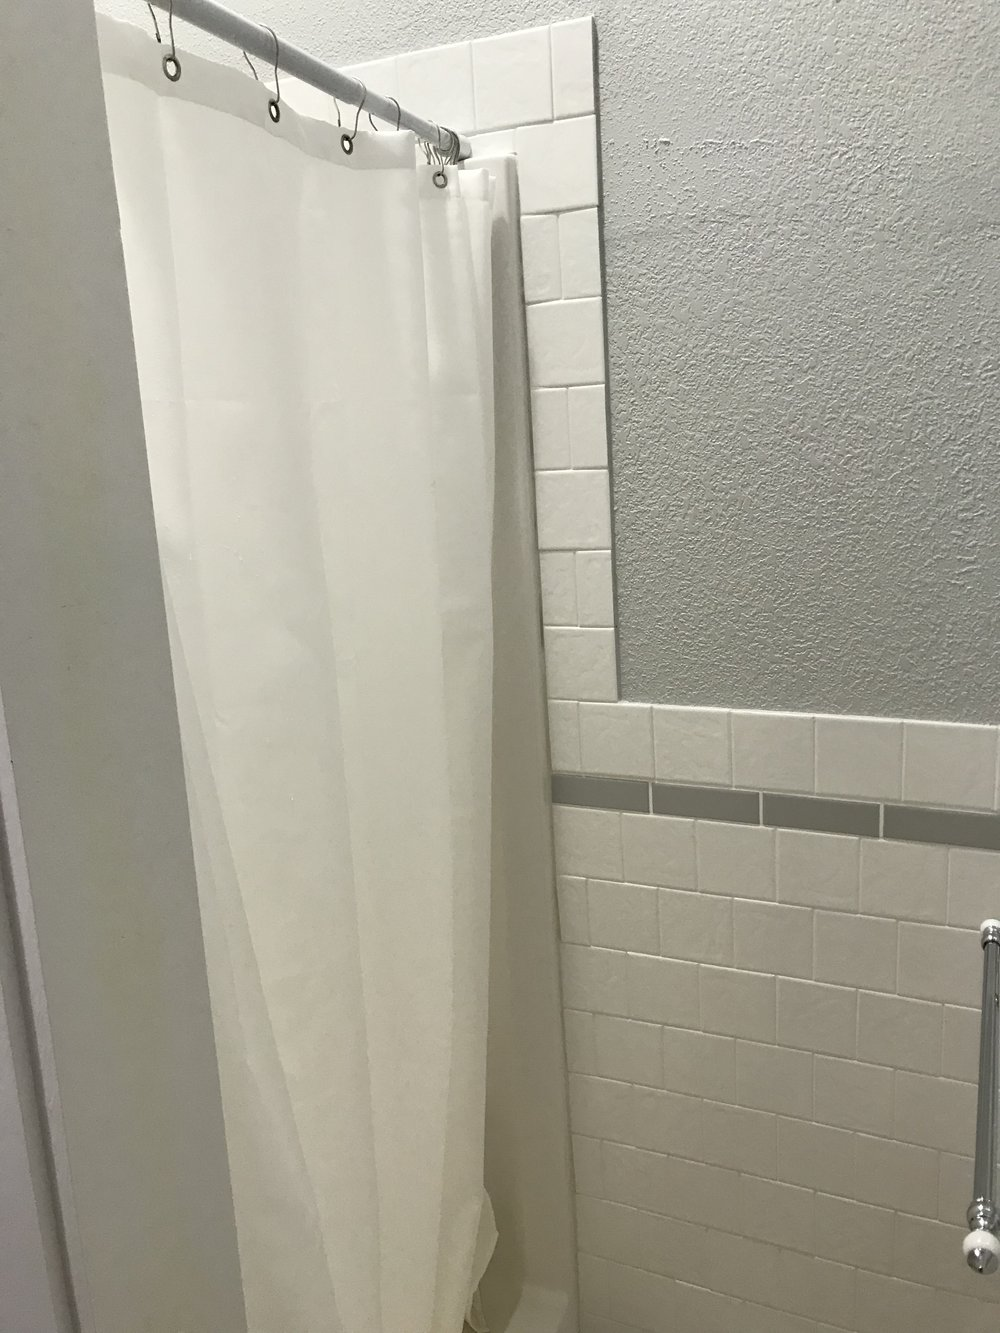 One piece shower unit